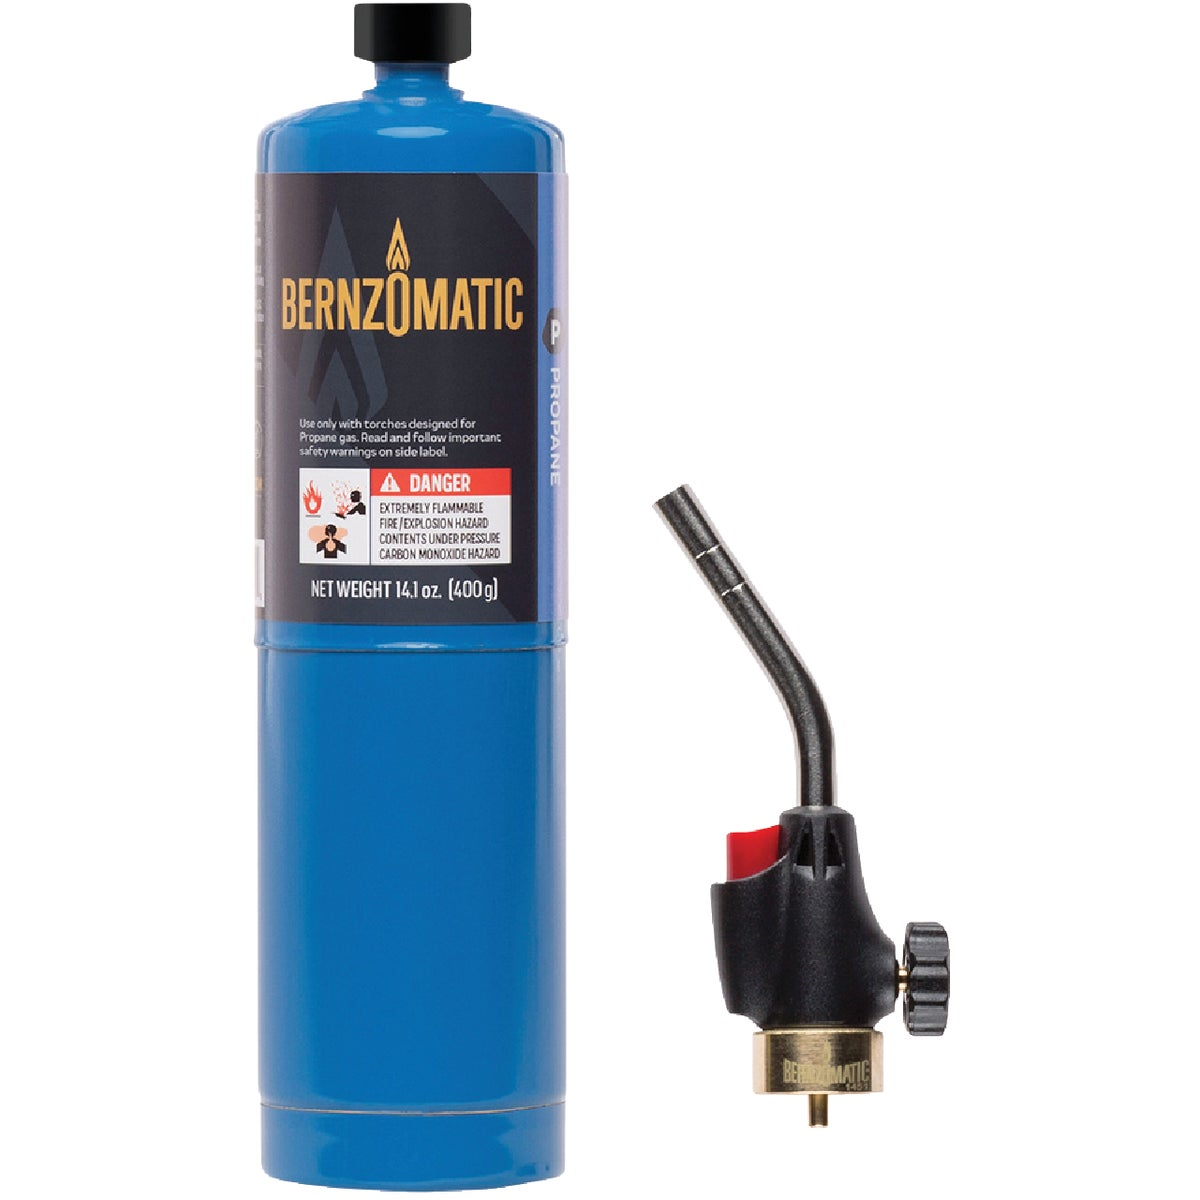 PLUMBERS TORCH KIT - 330983 by Worthington